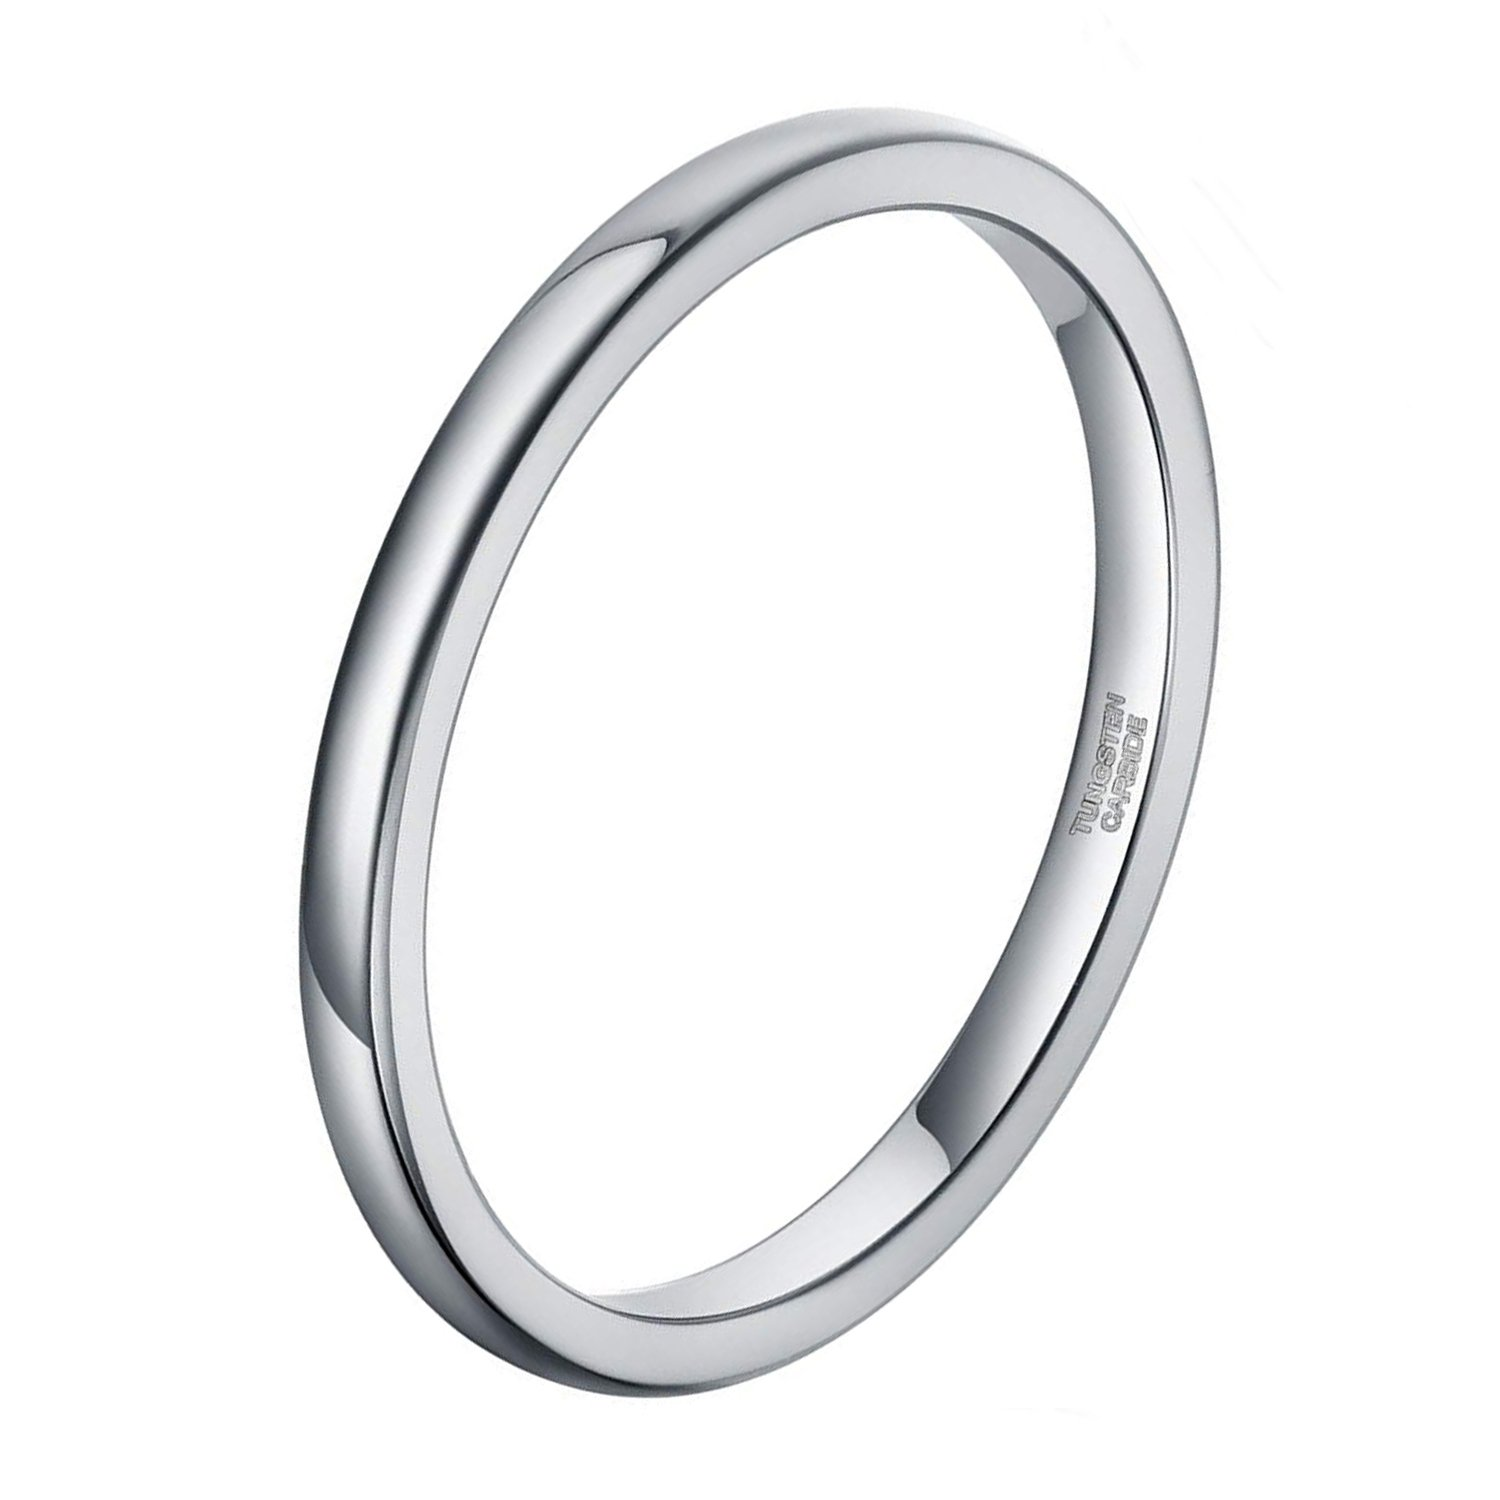 2mm Wedding Band for Women Silver Tungsten Carbide Ring Slim Plain Dome Style Comfort Fit Size 11